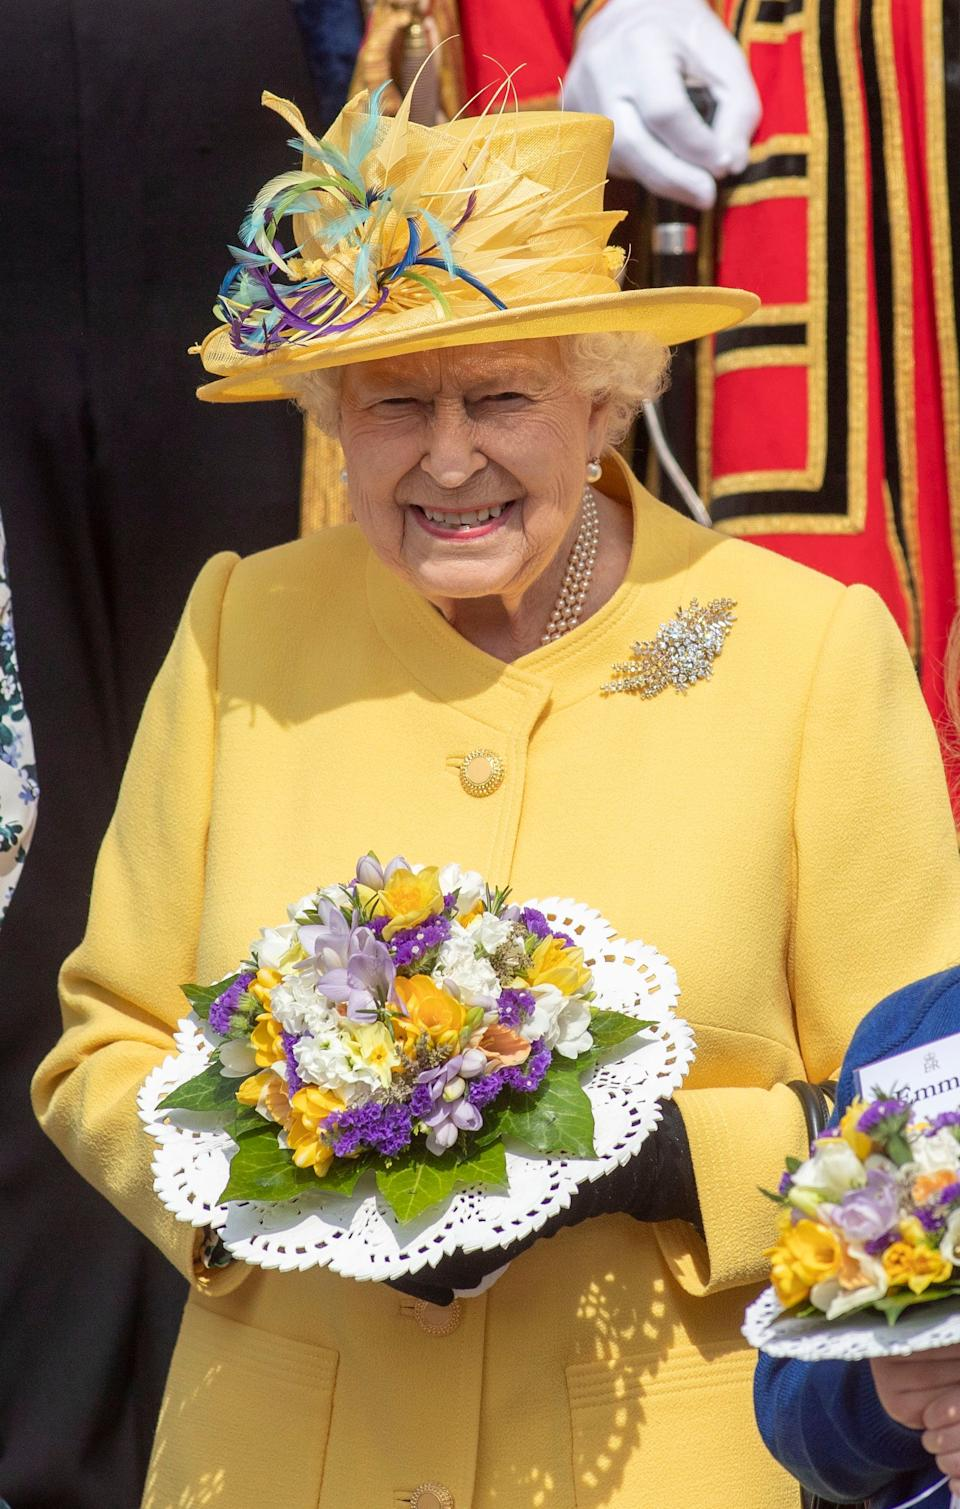 The Queen wore a buttercup yellow coat for the Maundy Thursday service [Photo: PA]